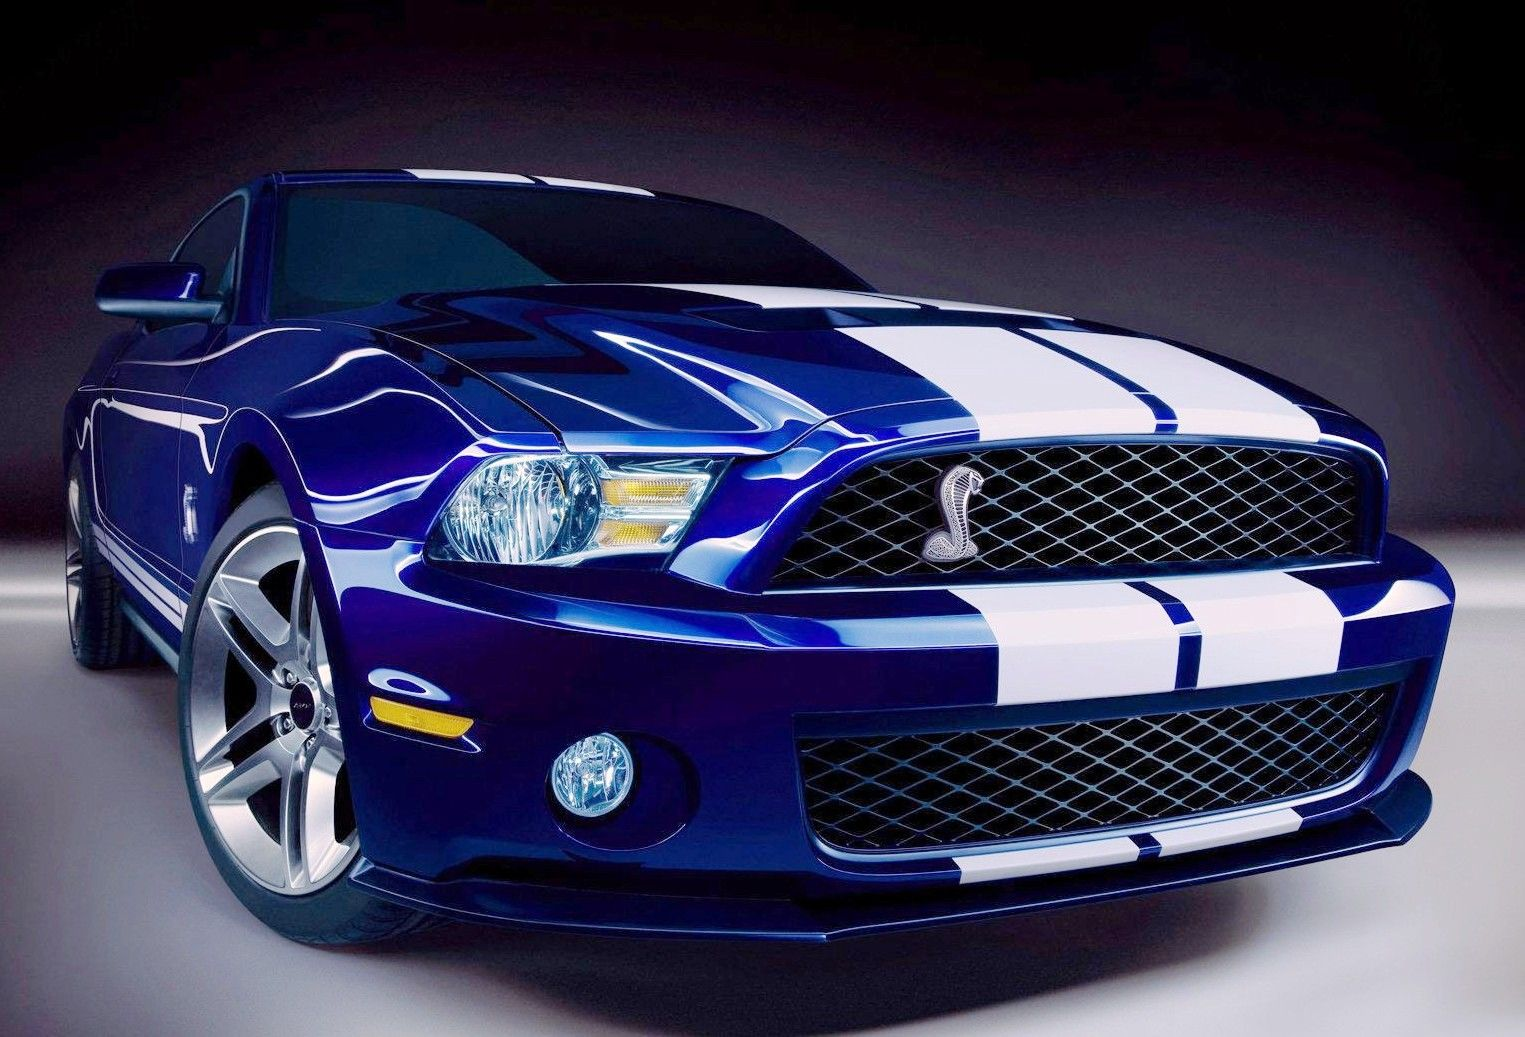 Ford shelby gt500 2014 cars rides blue cobra mustang